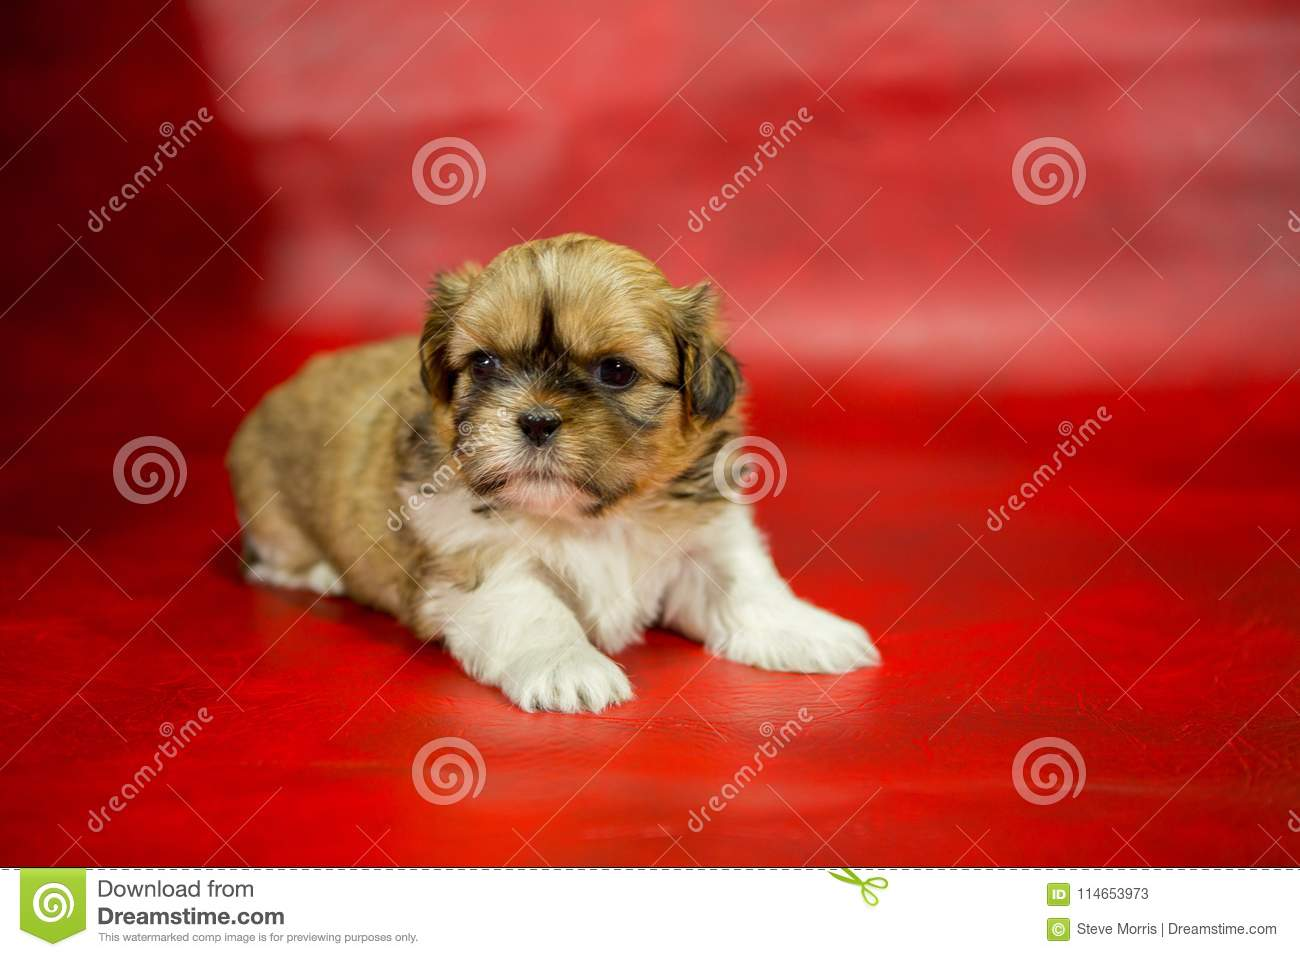 Shih Tzu Puppy On A Red Background Stock Image Image Of Companion Breed 114653973